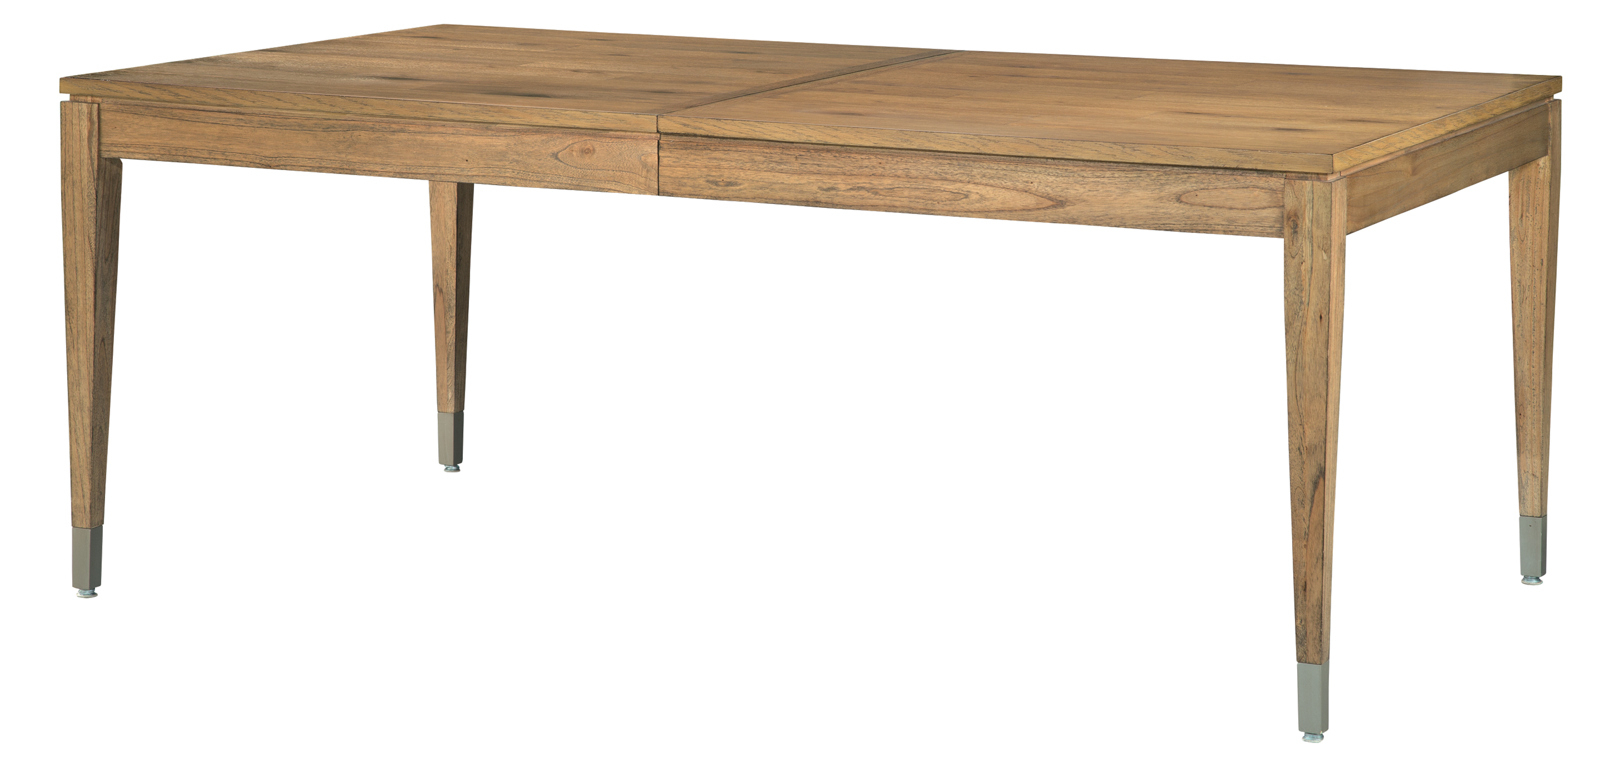 Preferred Avery Rectangular Dining Tables Throughout Hekman Avery Park Rectangular Dining Table In Light Brown (View 17 of 25)